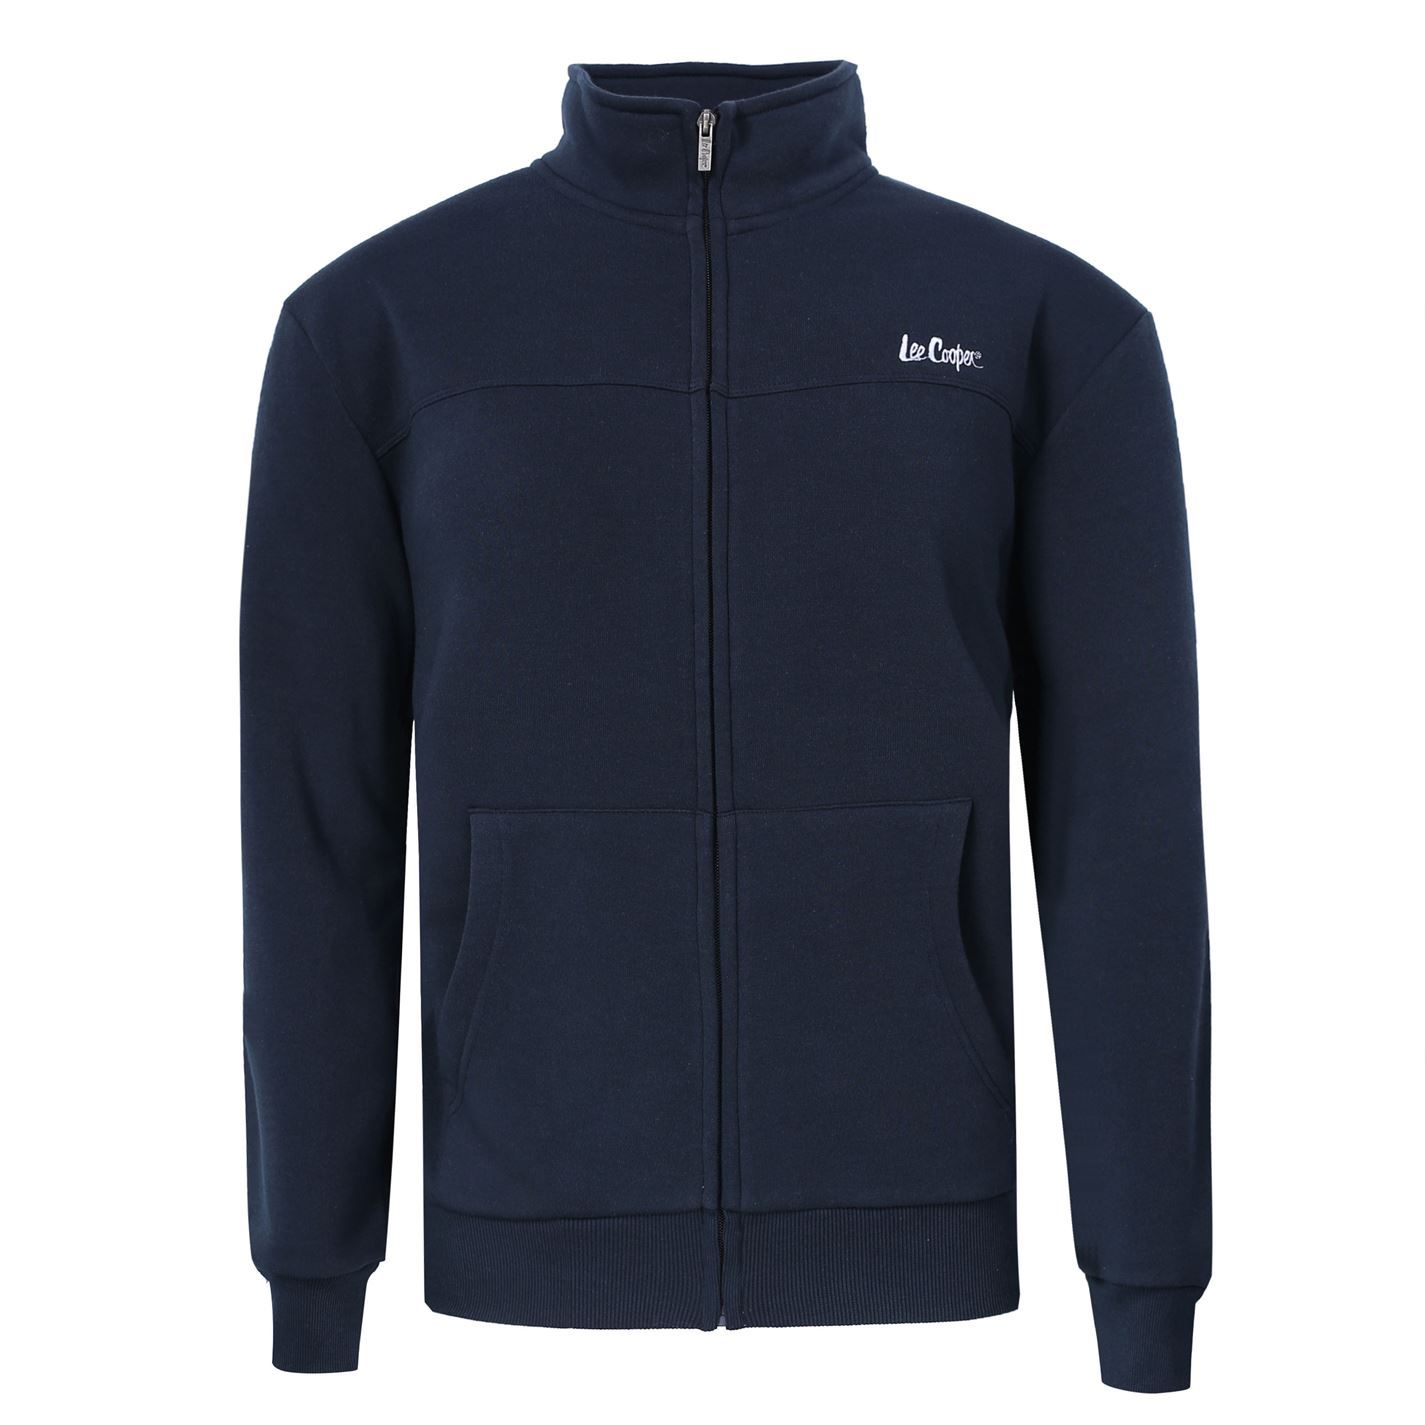 lee cooper mens full zip fleece jacket top coat sweatshirt jumper long sleeve ebay. Black Bedroom Furniture Sets. Home Design Ideas